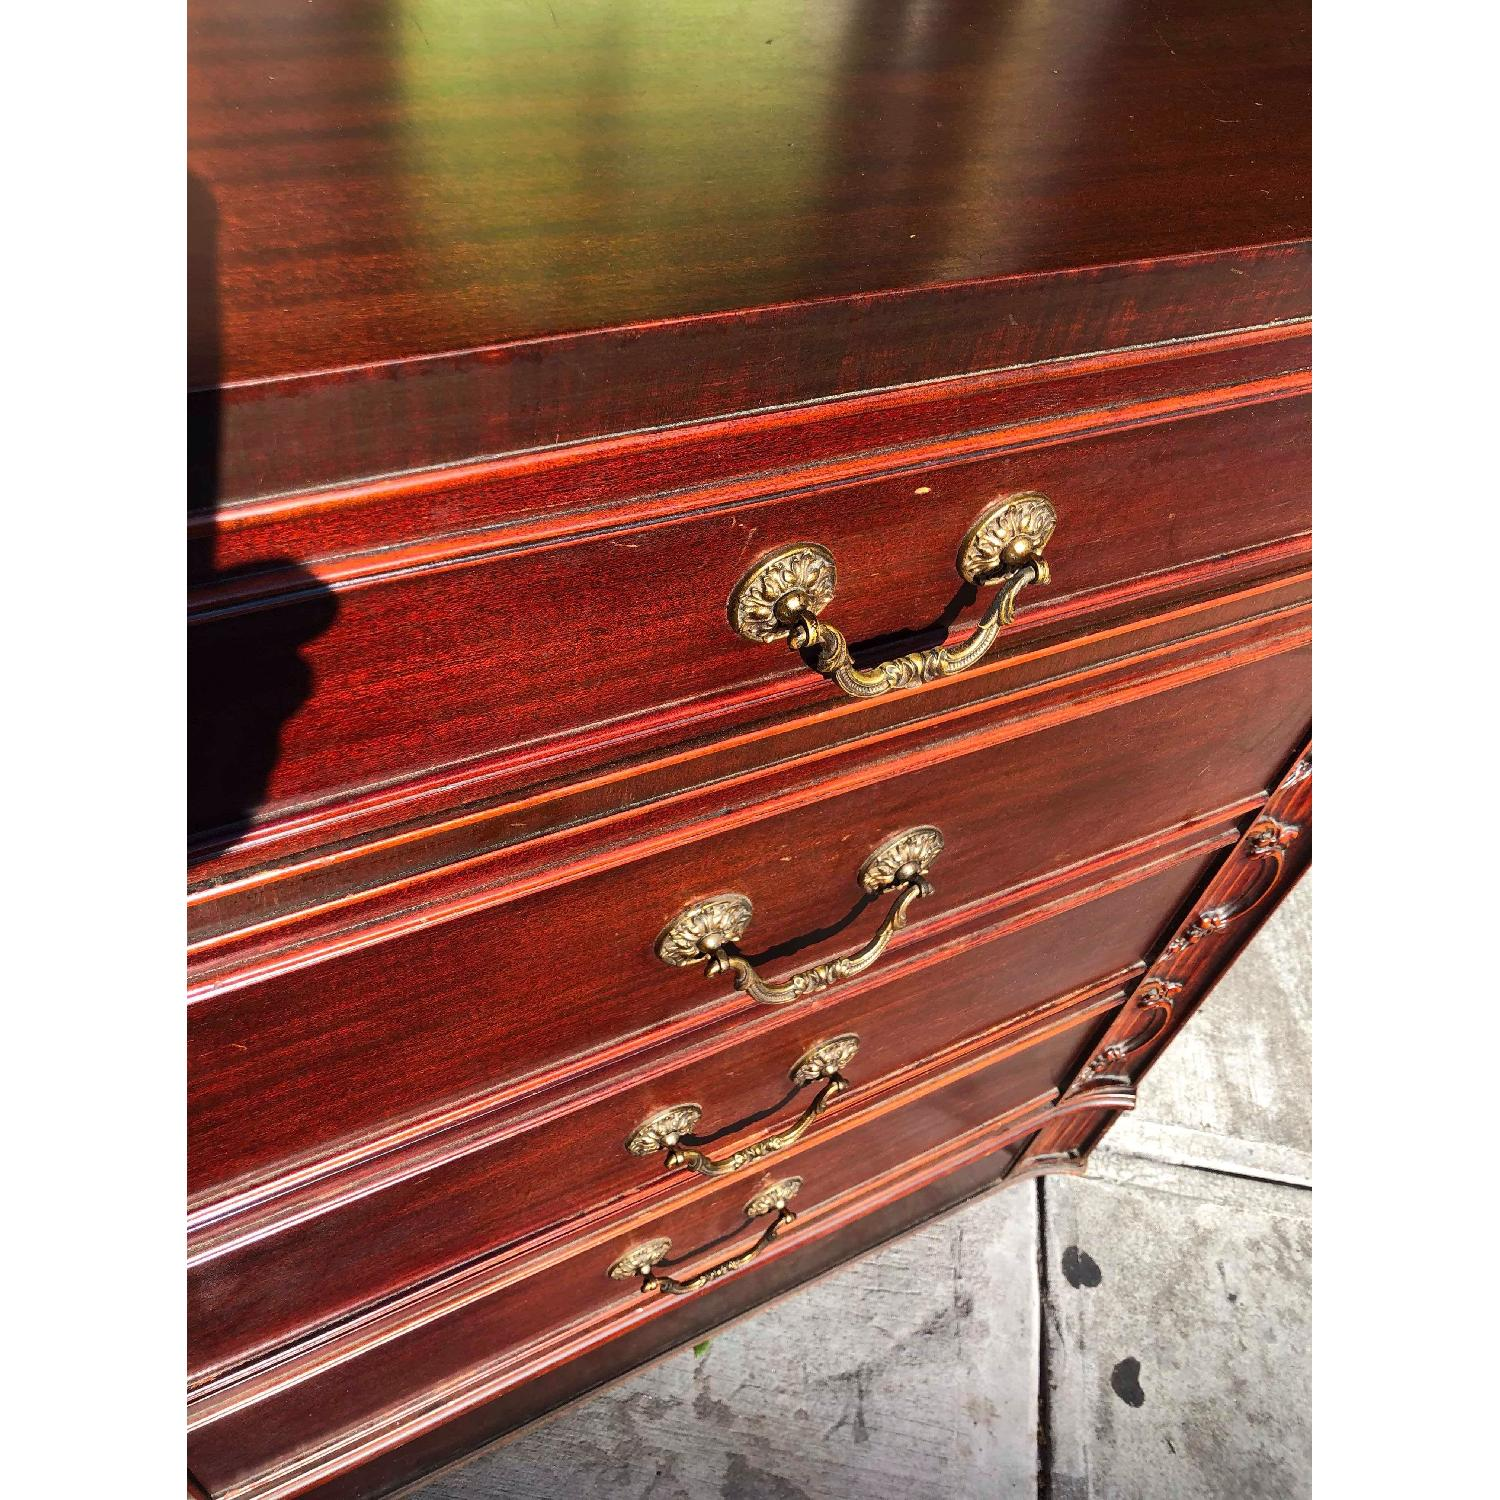 Antique 1930s Cherry Wood Leather Front 8 Drawer Dresser - image-7